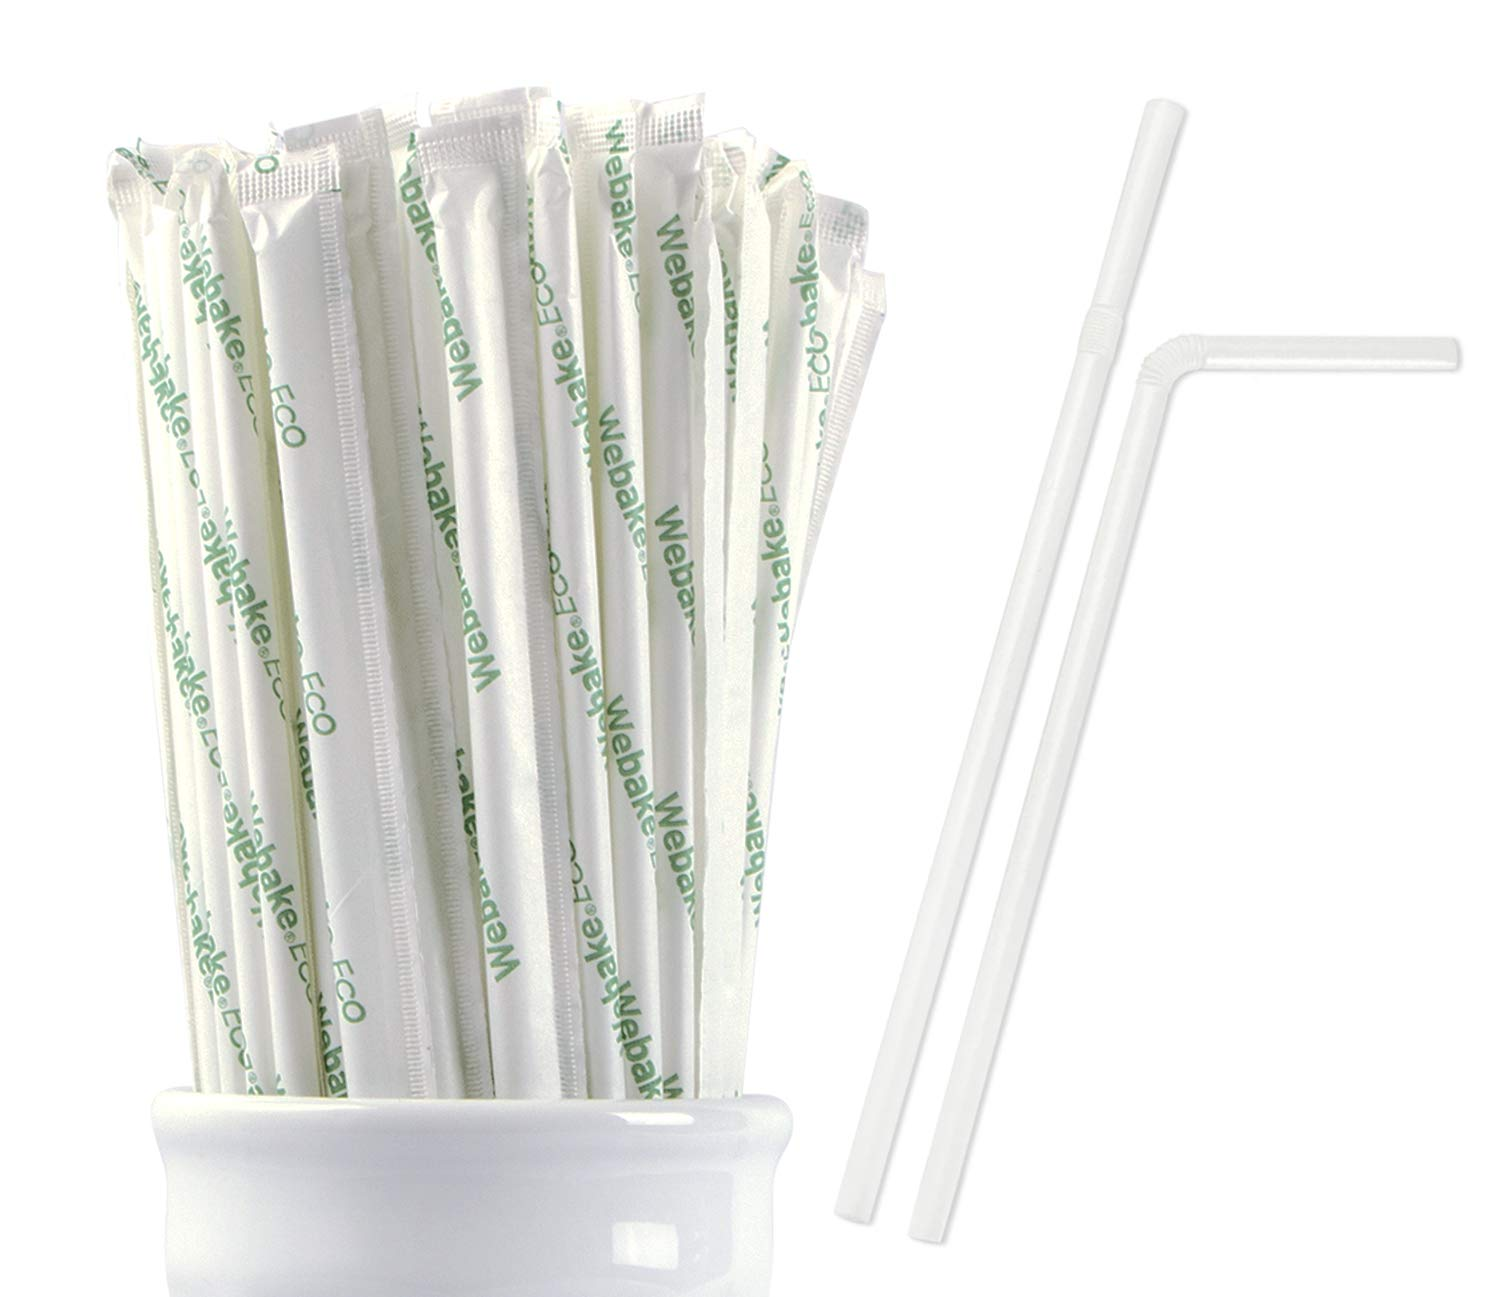 Webake 200 Pack Compostable Flex Straws Eco Friendly Corn Starch Drinking Straw, Plastic Alternative Straws for Cocktail Coffee and Juice Pouches, 200 Bulk Pack Individually Wrapped